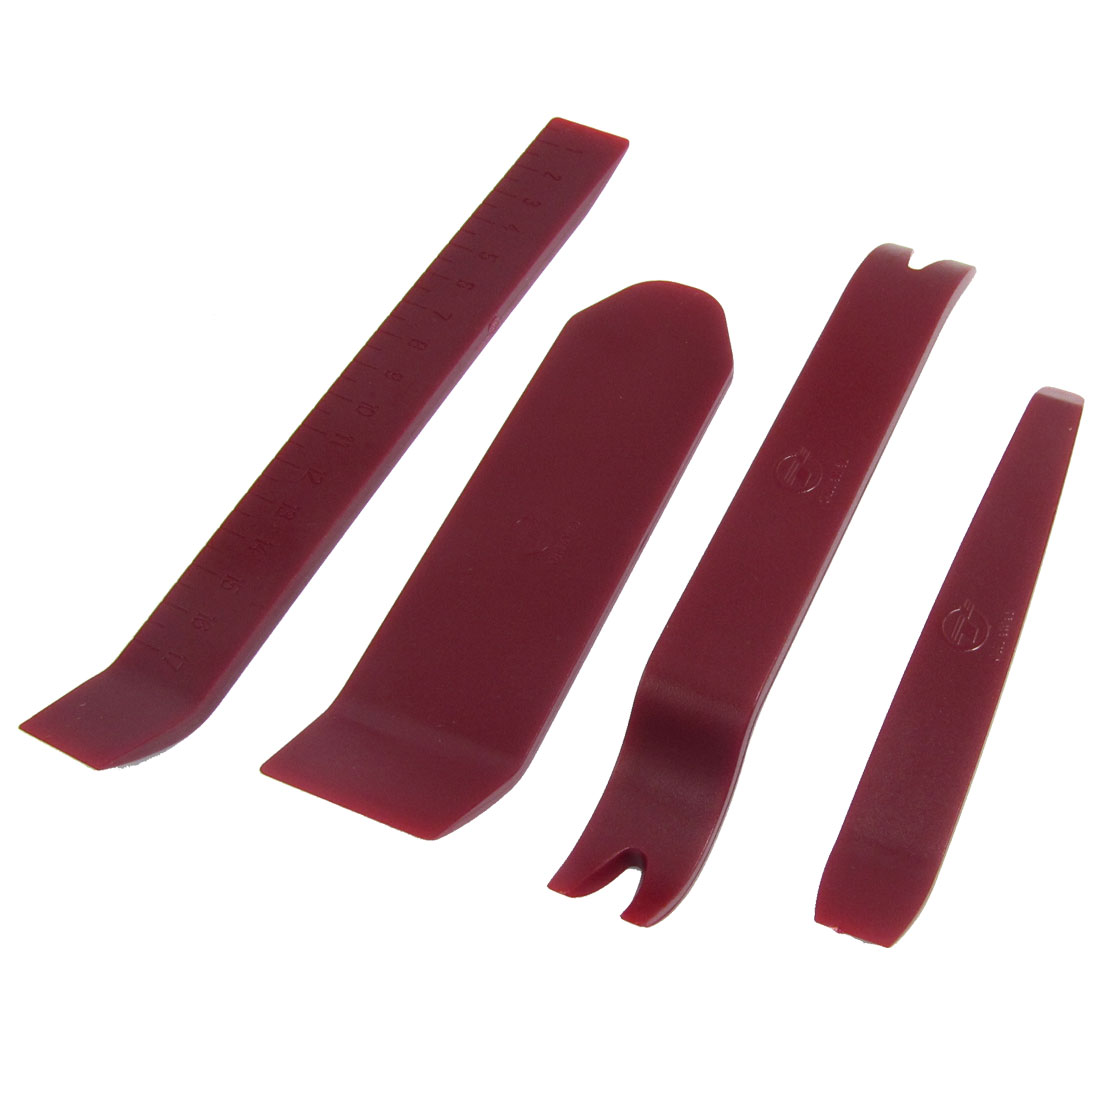 Car Audio Radio Plastic Trim Molding Pry Bar Removal Tool Burgundy 4 in 1